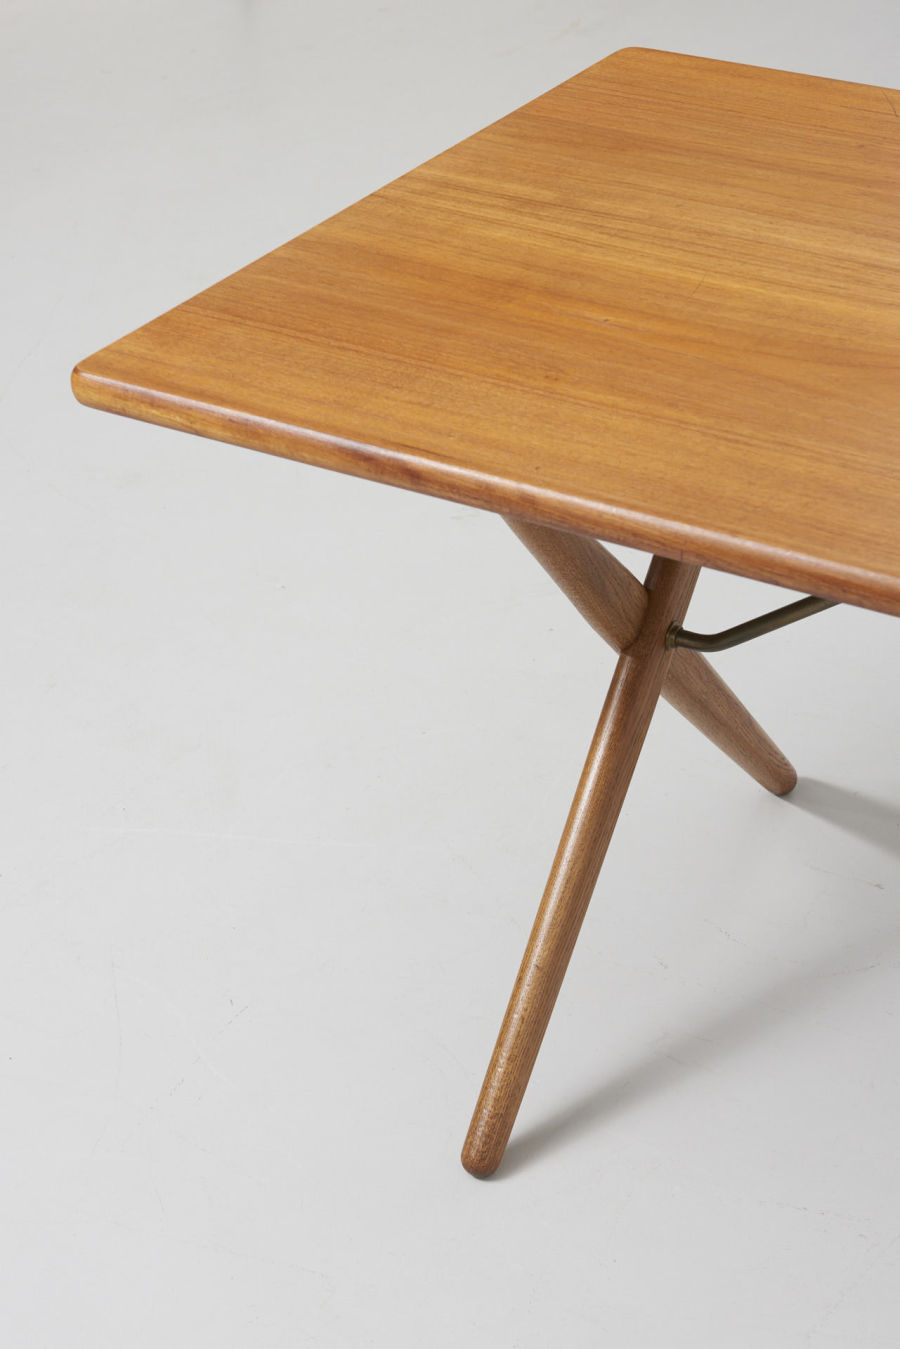 modestfurniture-vintage-2130-hans-wegner-crossleg-table-andreas-tuck-at-30302